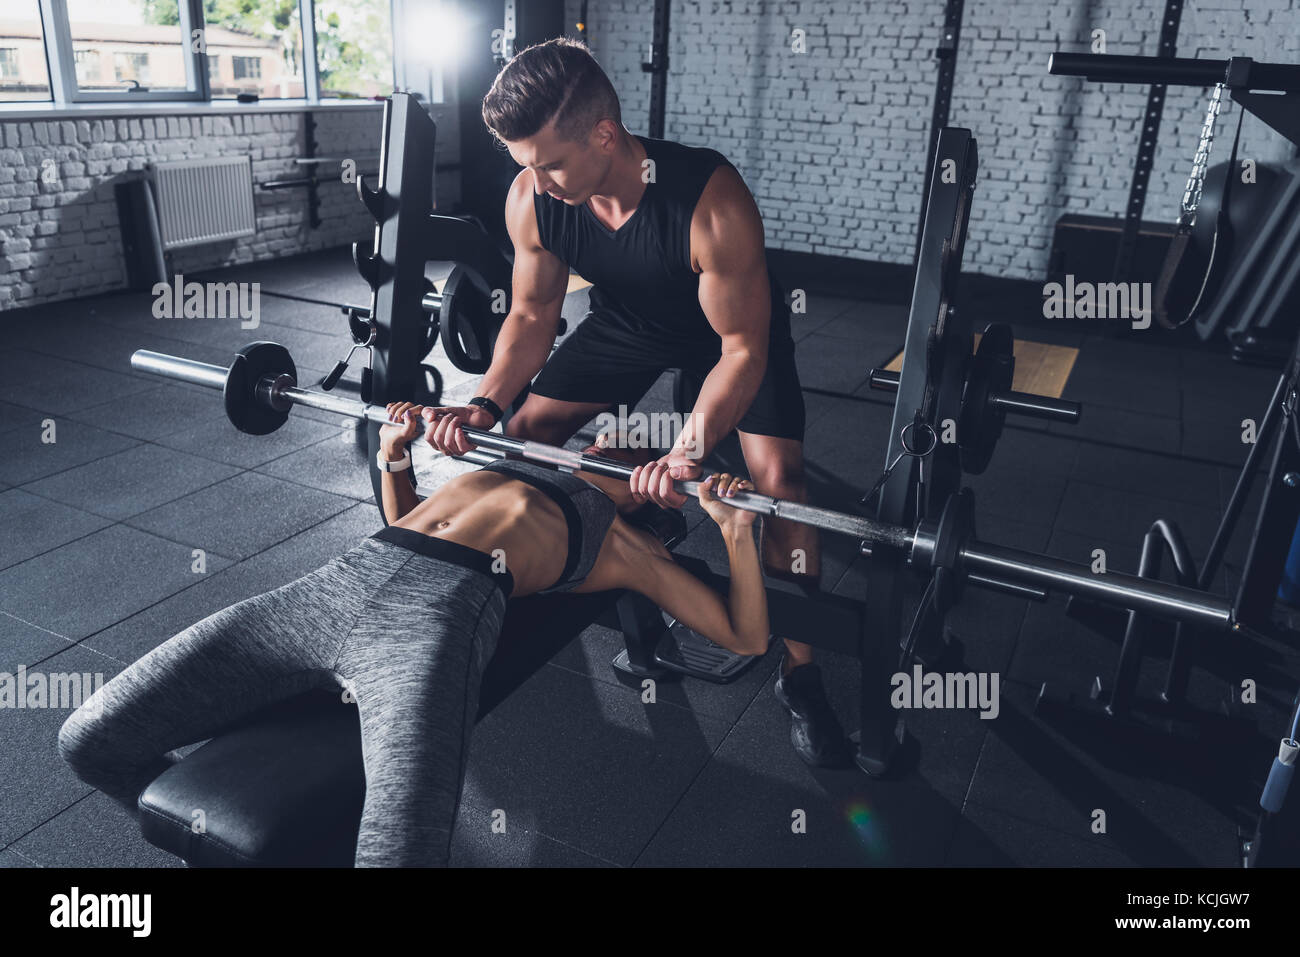 Trainer helping woman weightlifting Photo Stock